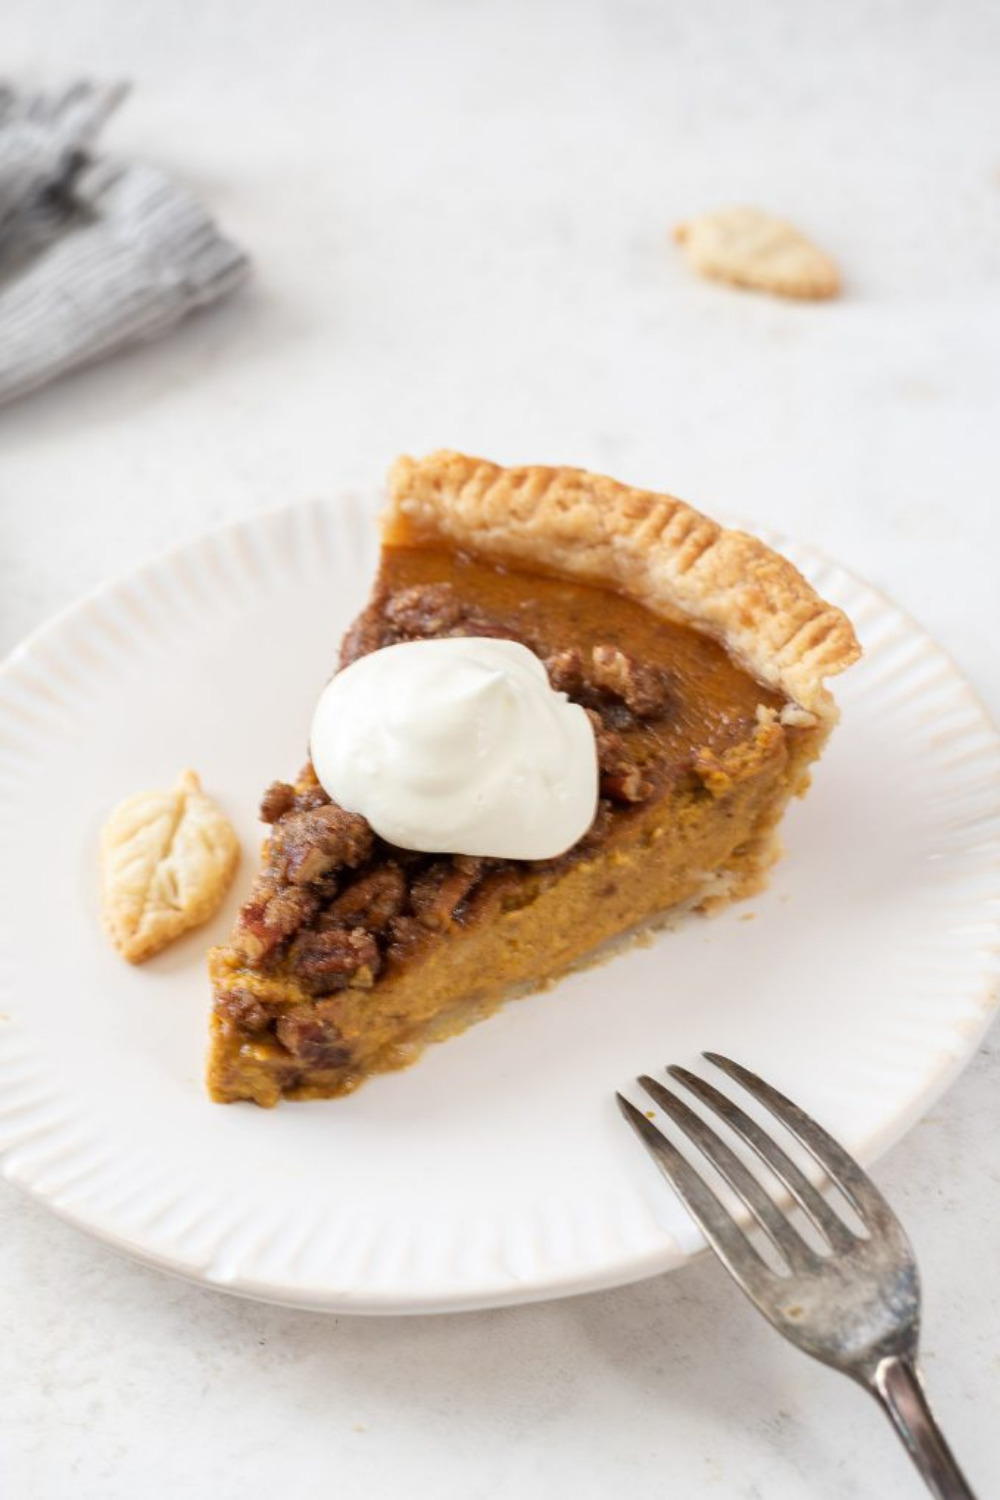 Pumpkin Pecan Pie is a buttery, flaky pie crust filled with creamy pumpkin filling and topped with a sweet, crunchy pecan streusel. This is an easy, make ahead pie that's perfect for the holidays!